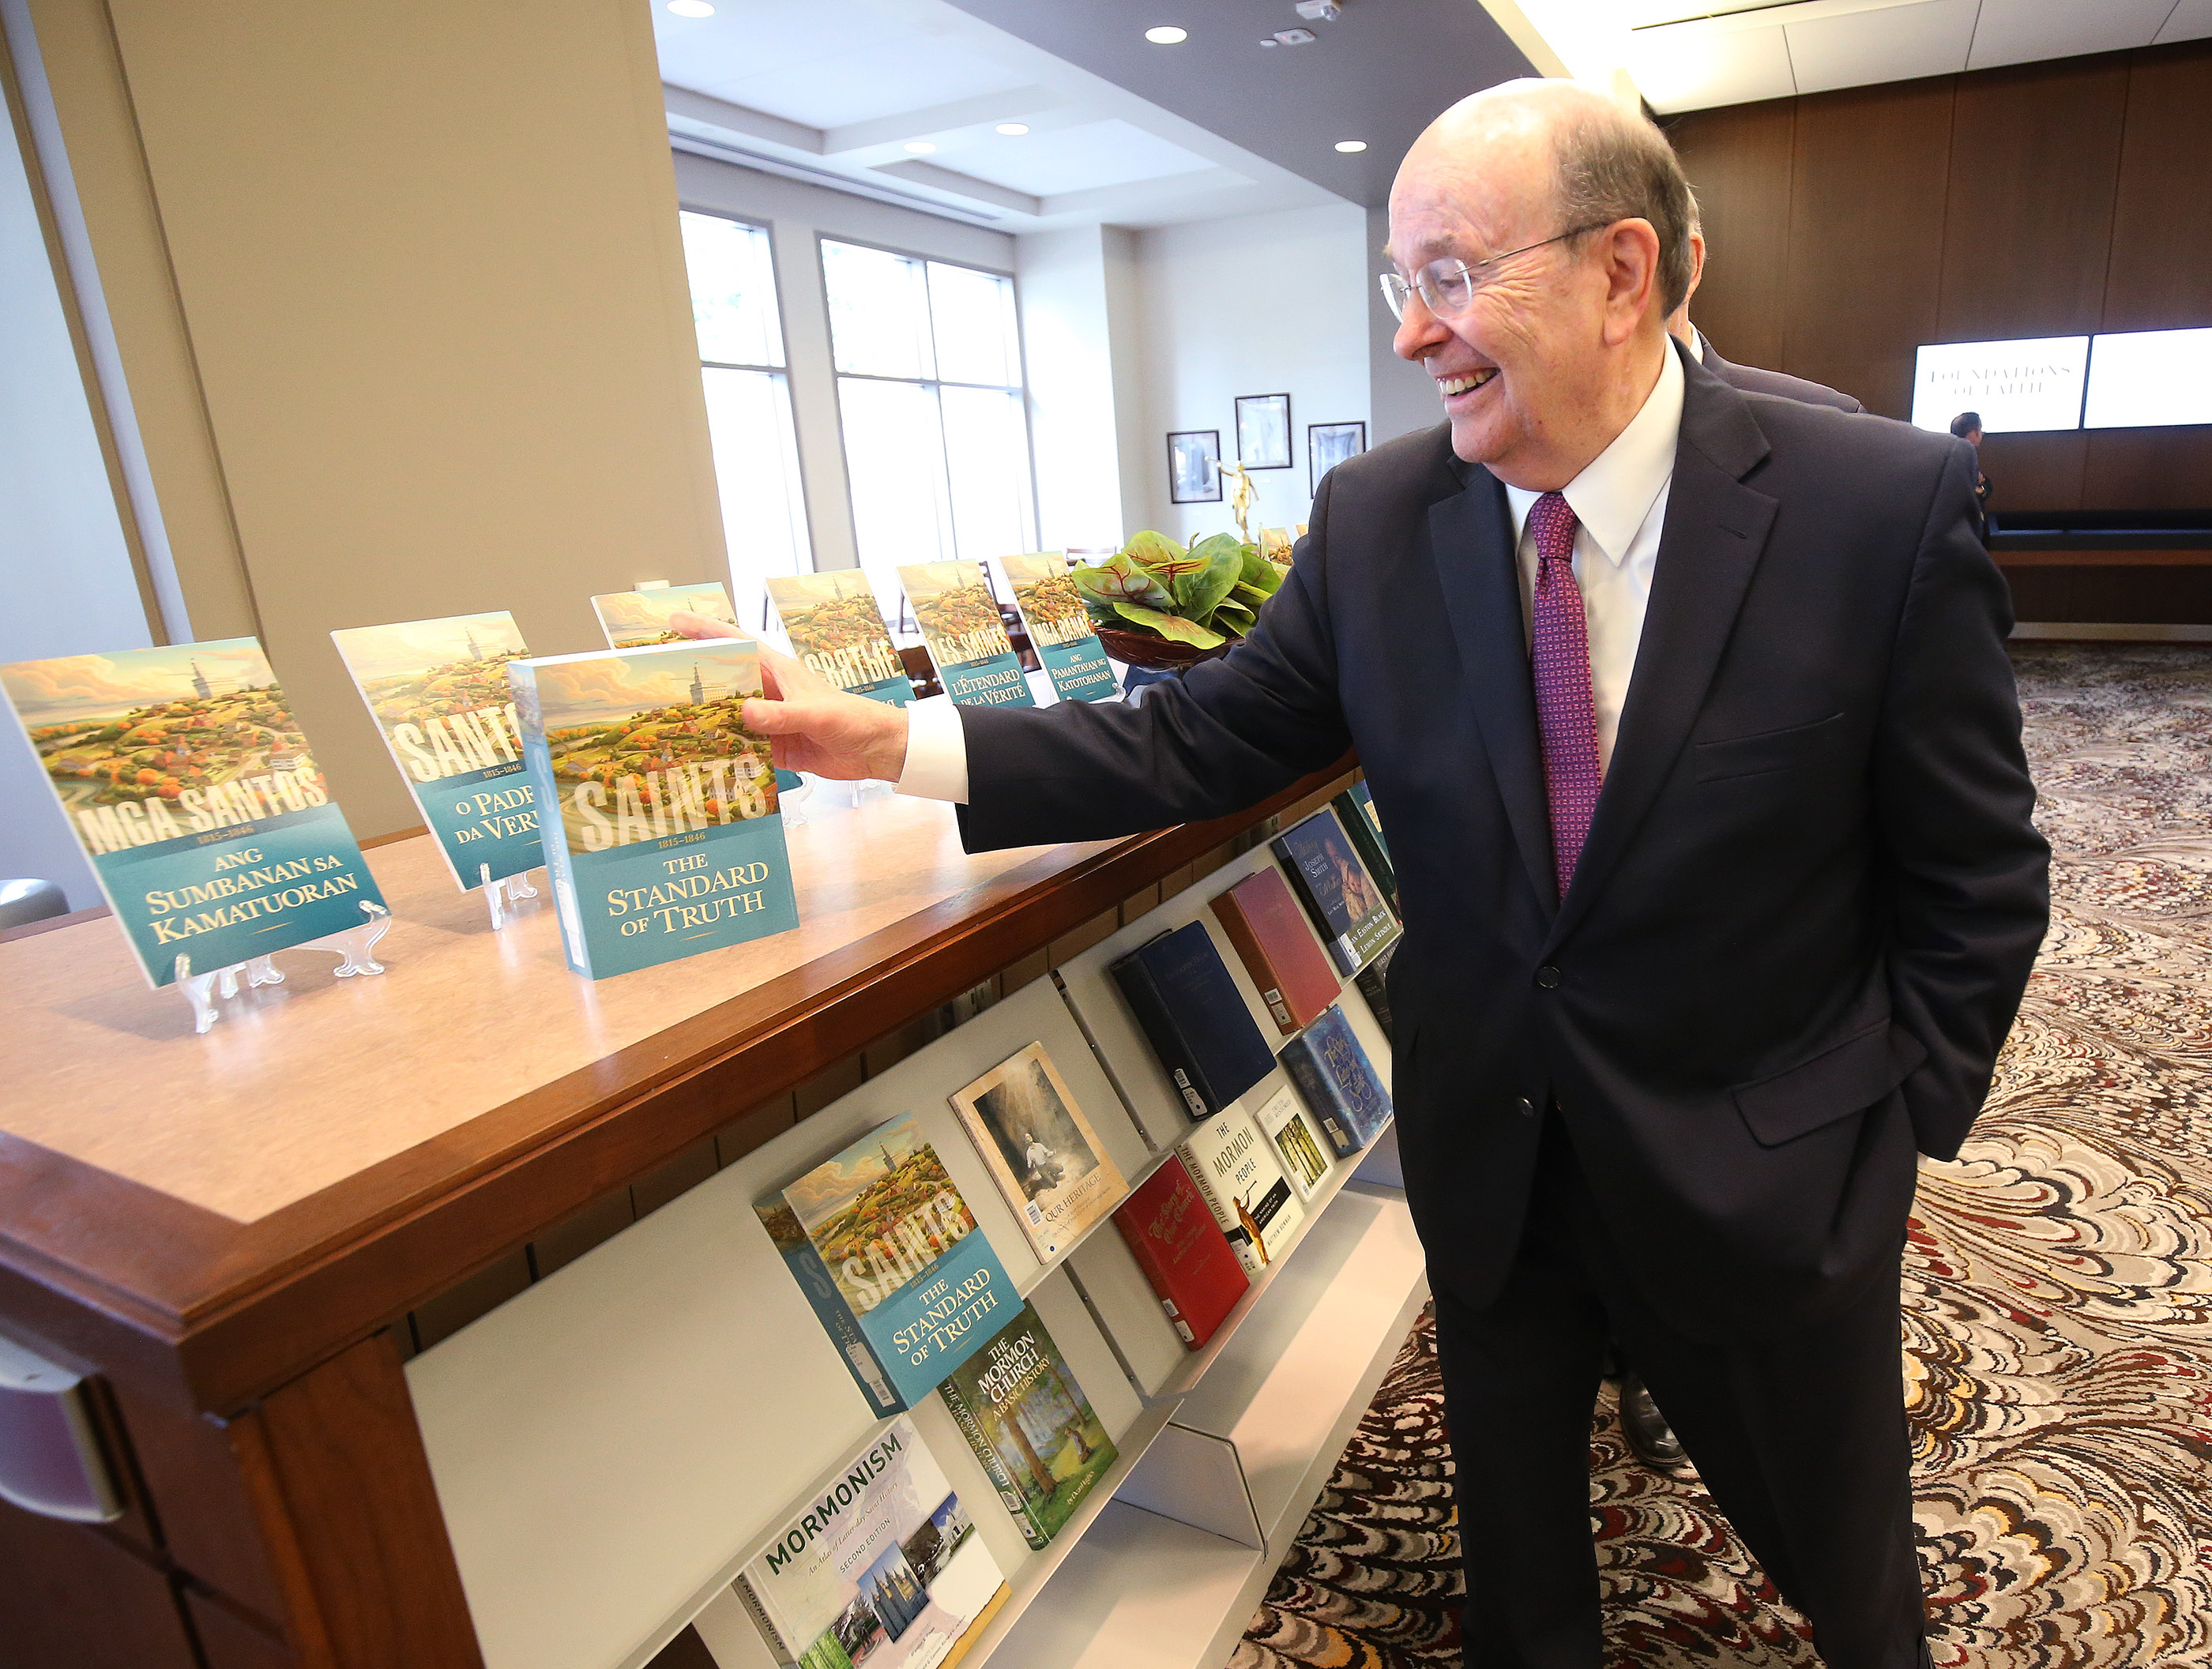 """Elder Quentin L. Cook of the Quorum of the Twelve Apostles looks over """"Saints: The Story of The Church of Jesus Christ in the Latter Days"""" in Salt Lake City on Tuesday, Sept. 4, 2018."""